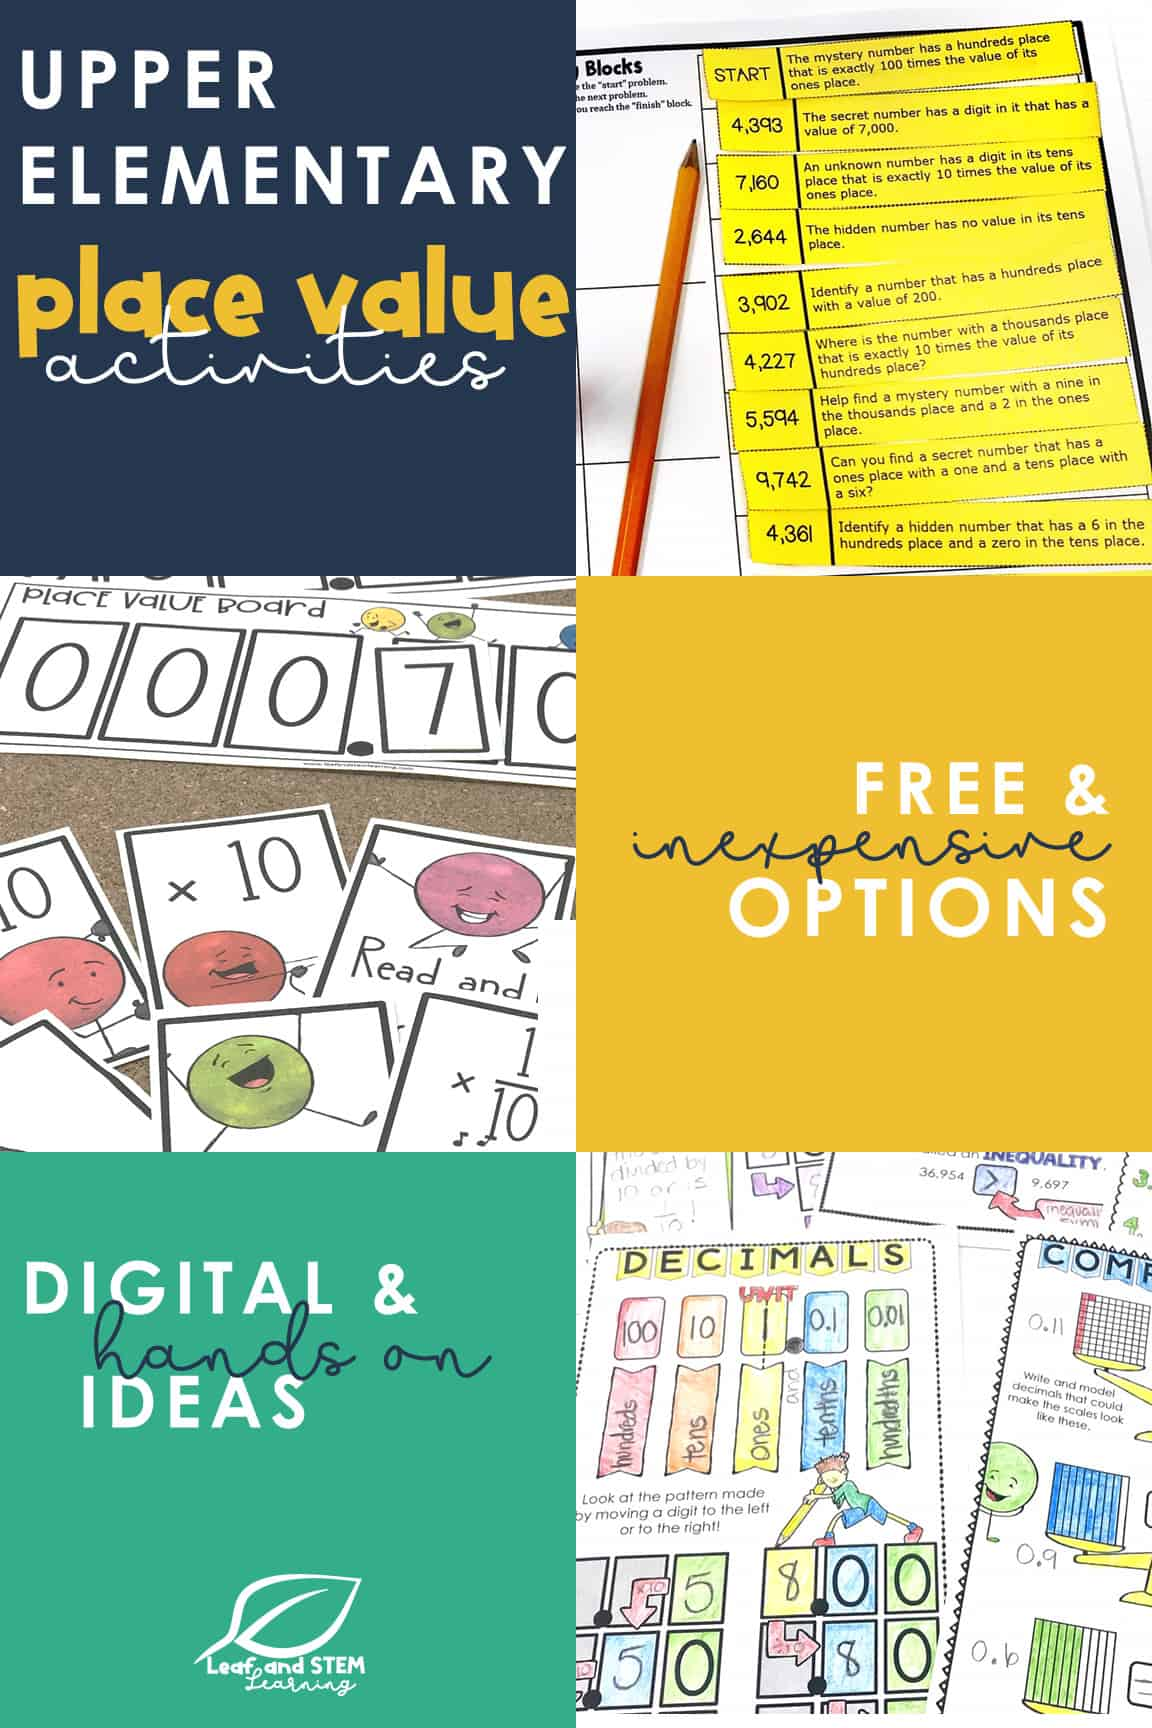 Upper Elementary Place Value Activities | free and inexpensive options | digital and hands on ideas